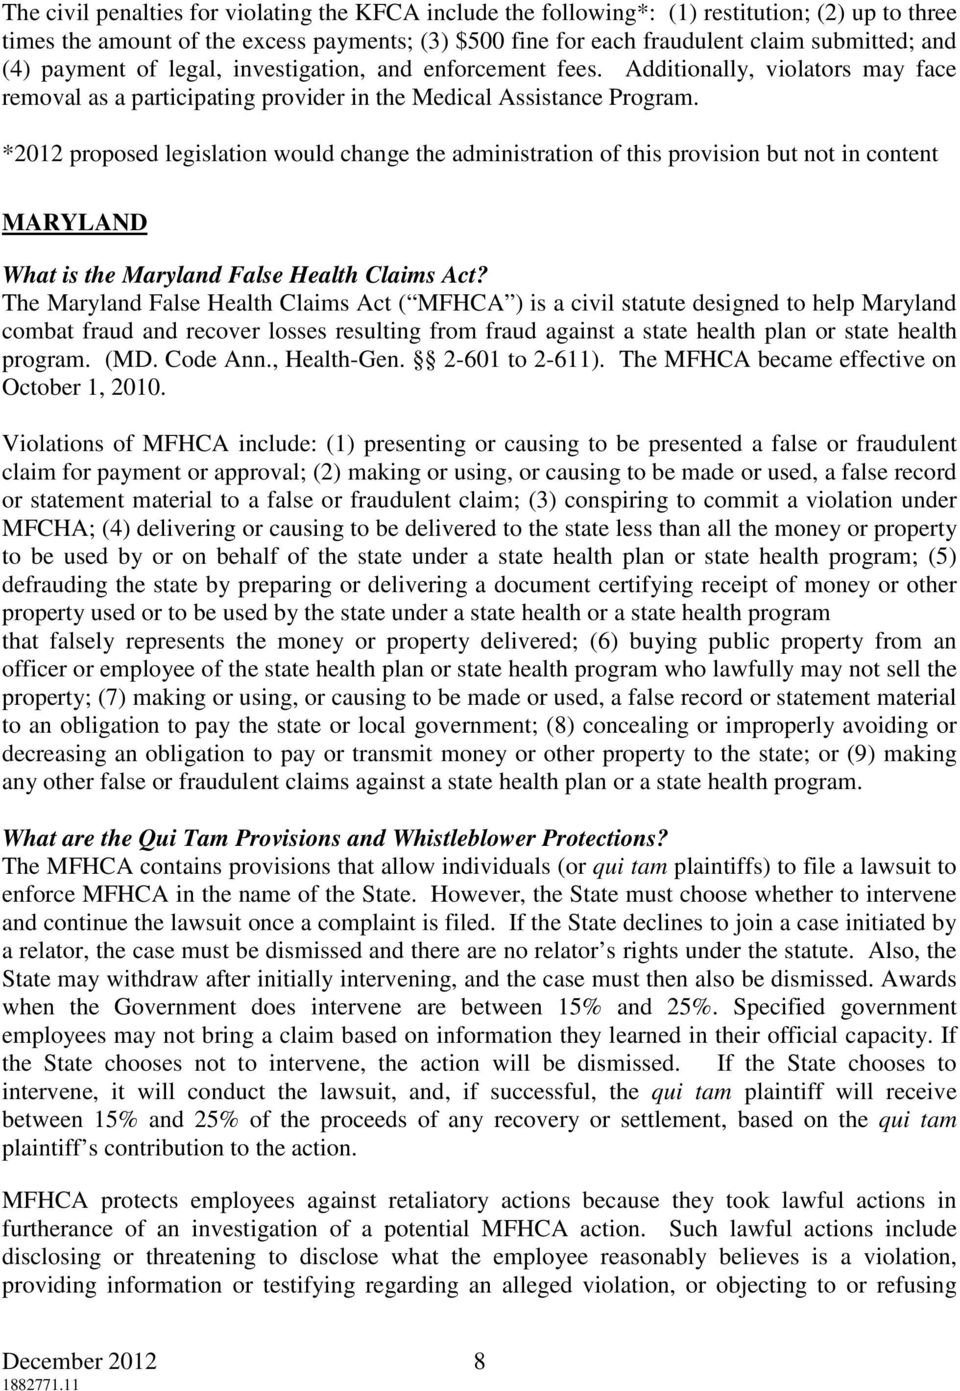 *2012 proposed legislation would change the administration of this provision but not in content MARYLAND What is the Maryland False Health Claims Act?